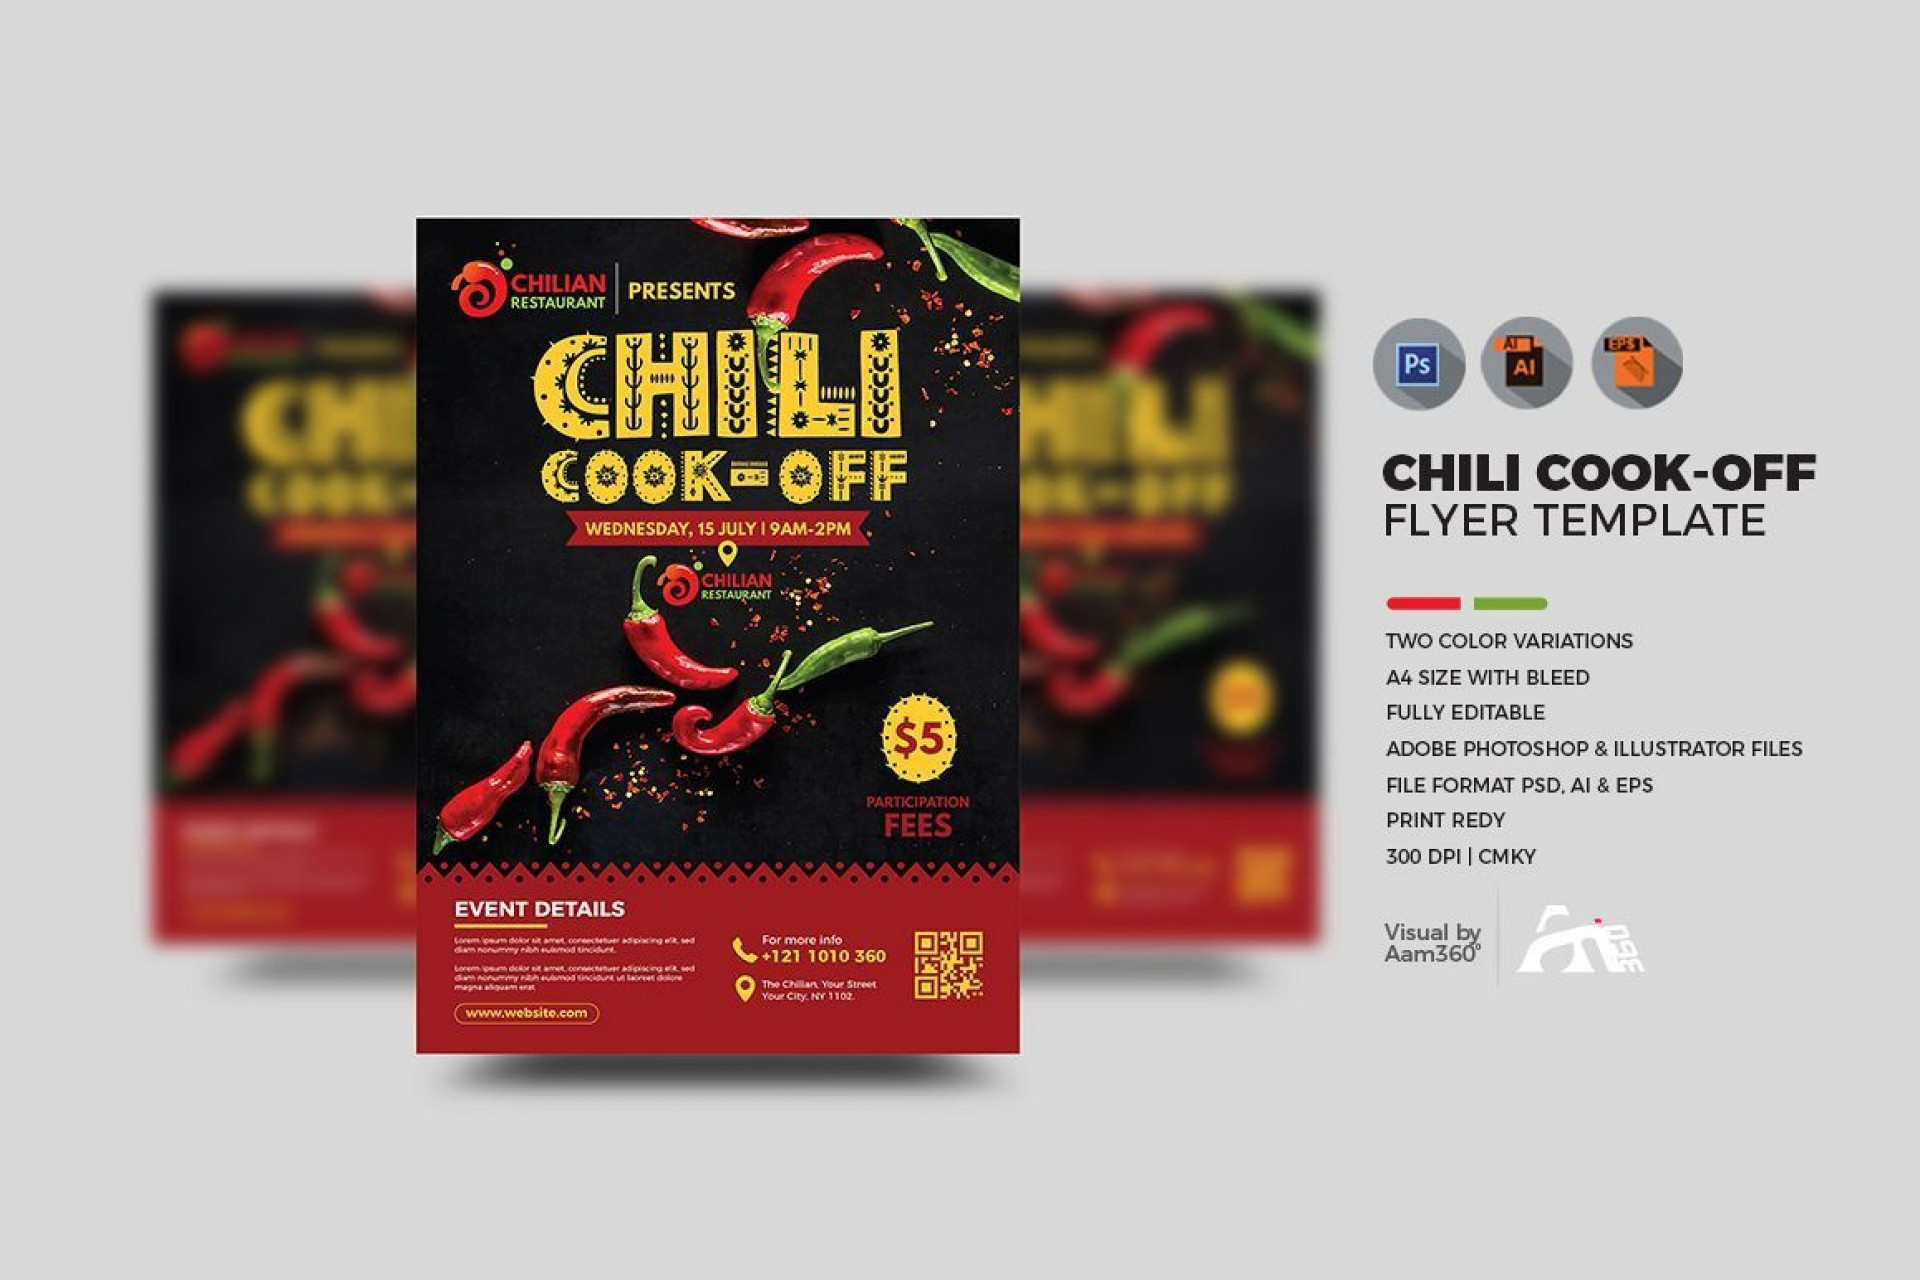 001 Frightening Chili Cook Off Flyer Template Design  Halloween Office Powerpoint1920